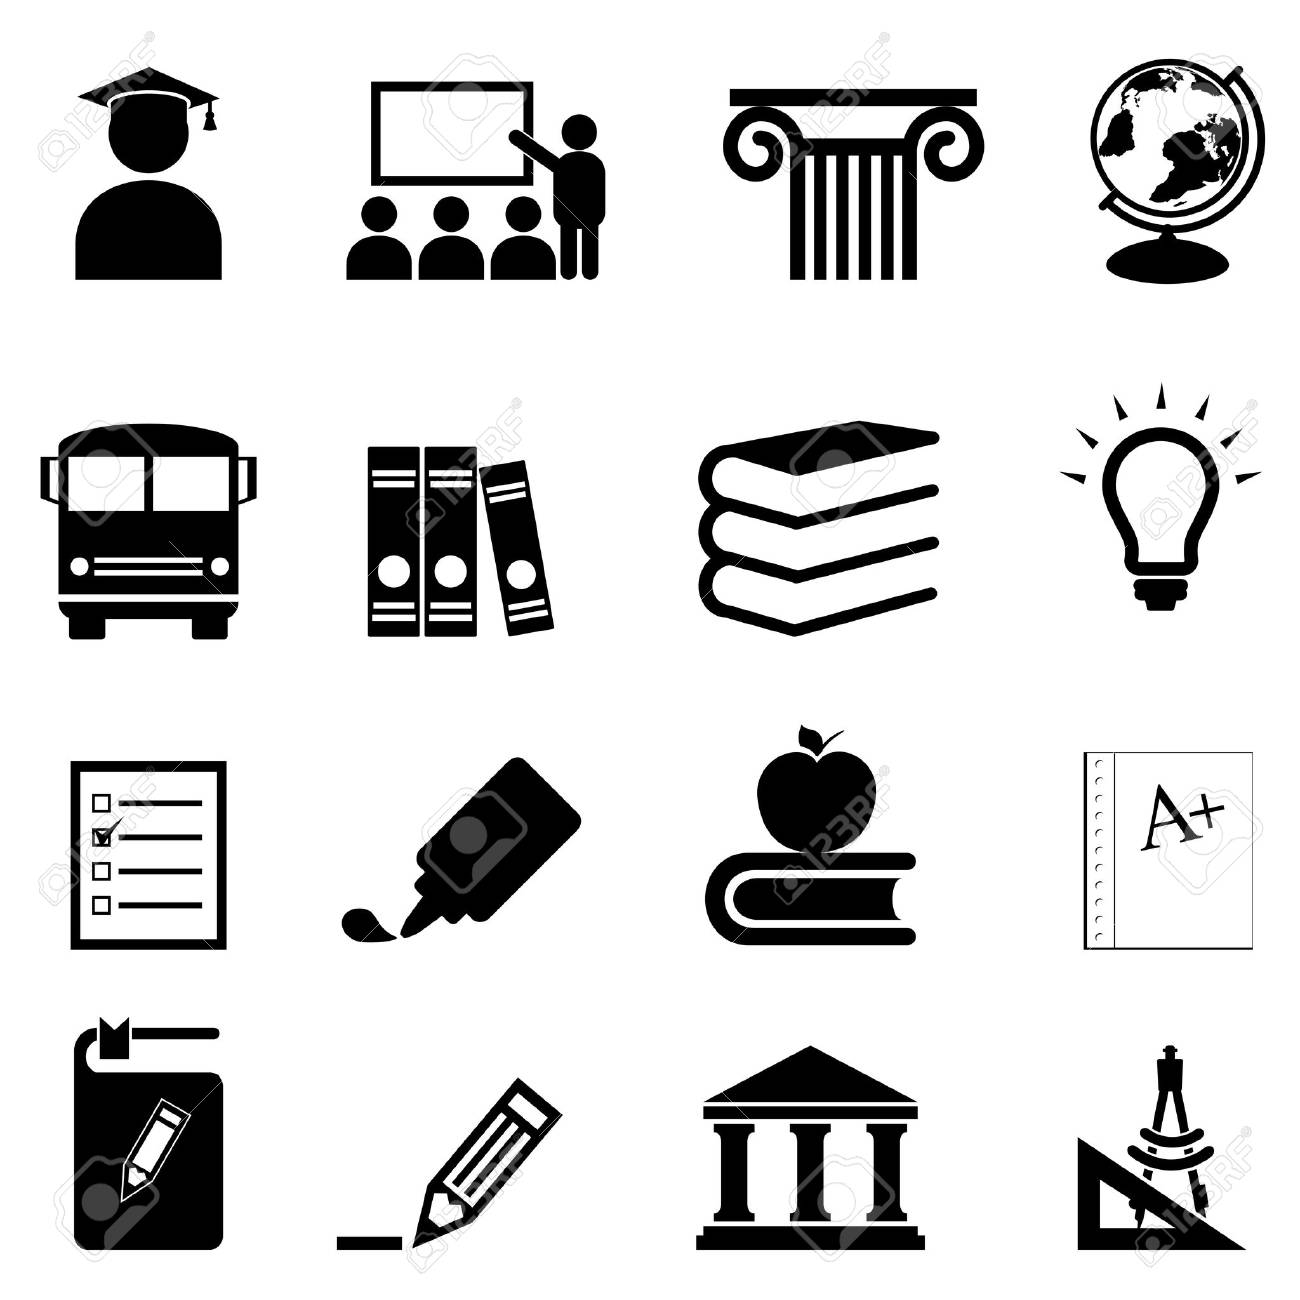 Education and schools icon set - 18454700